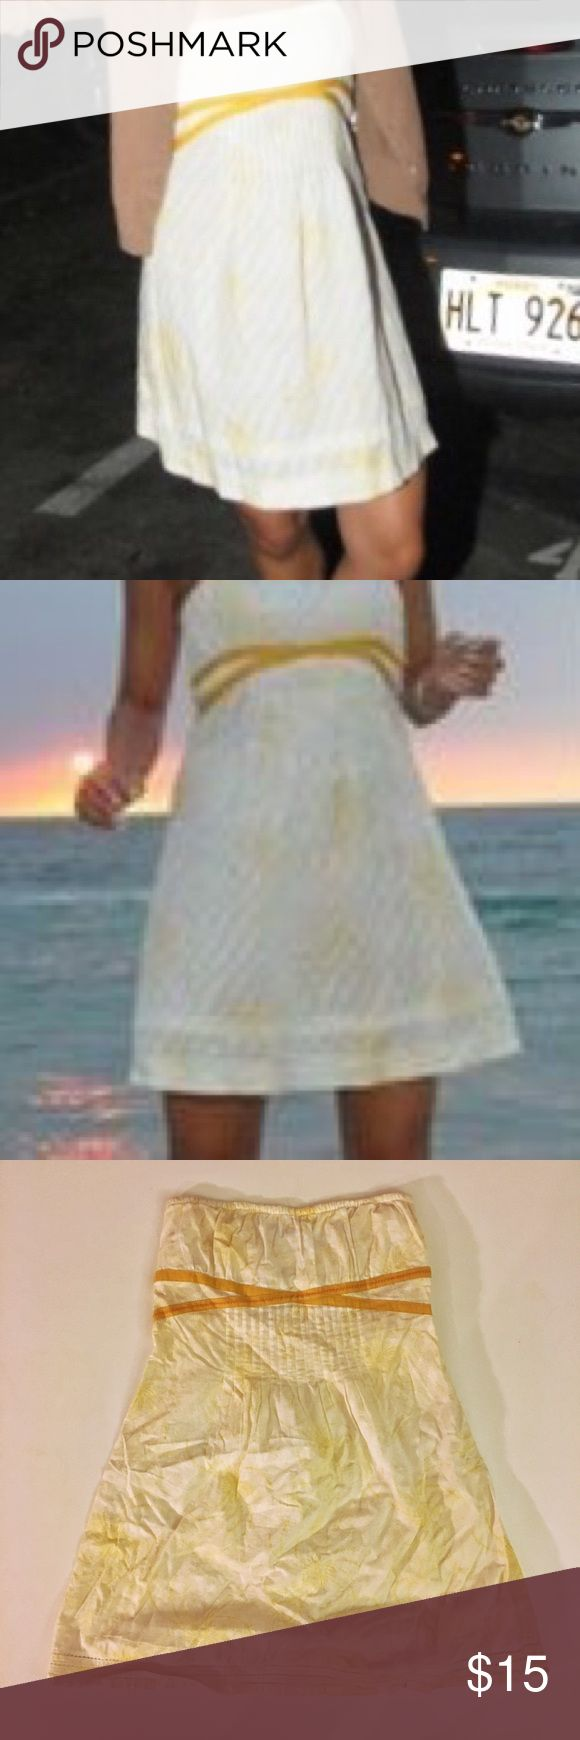 Free People White & Light Yellow Cotton Sundress Free People White & Light Yellow Cotton Sundress - Size 0 - 100% cotton - in great condition Free People Dresses Strapless